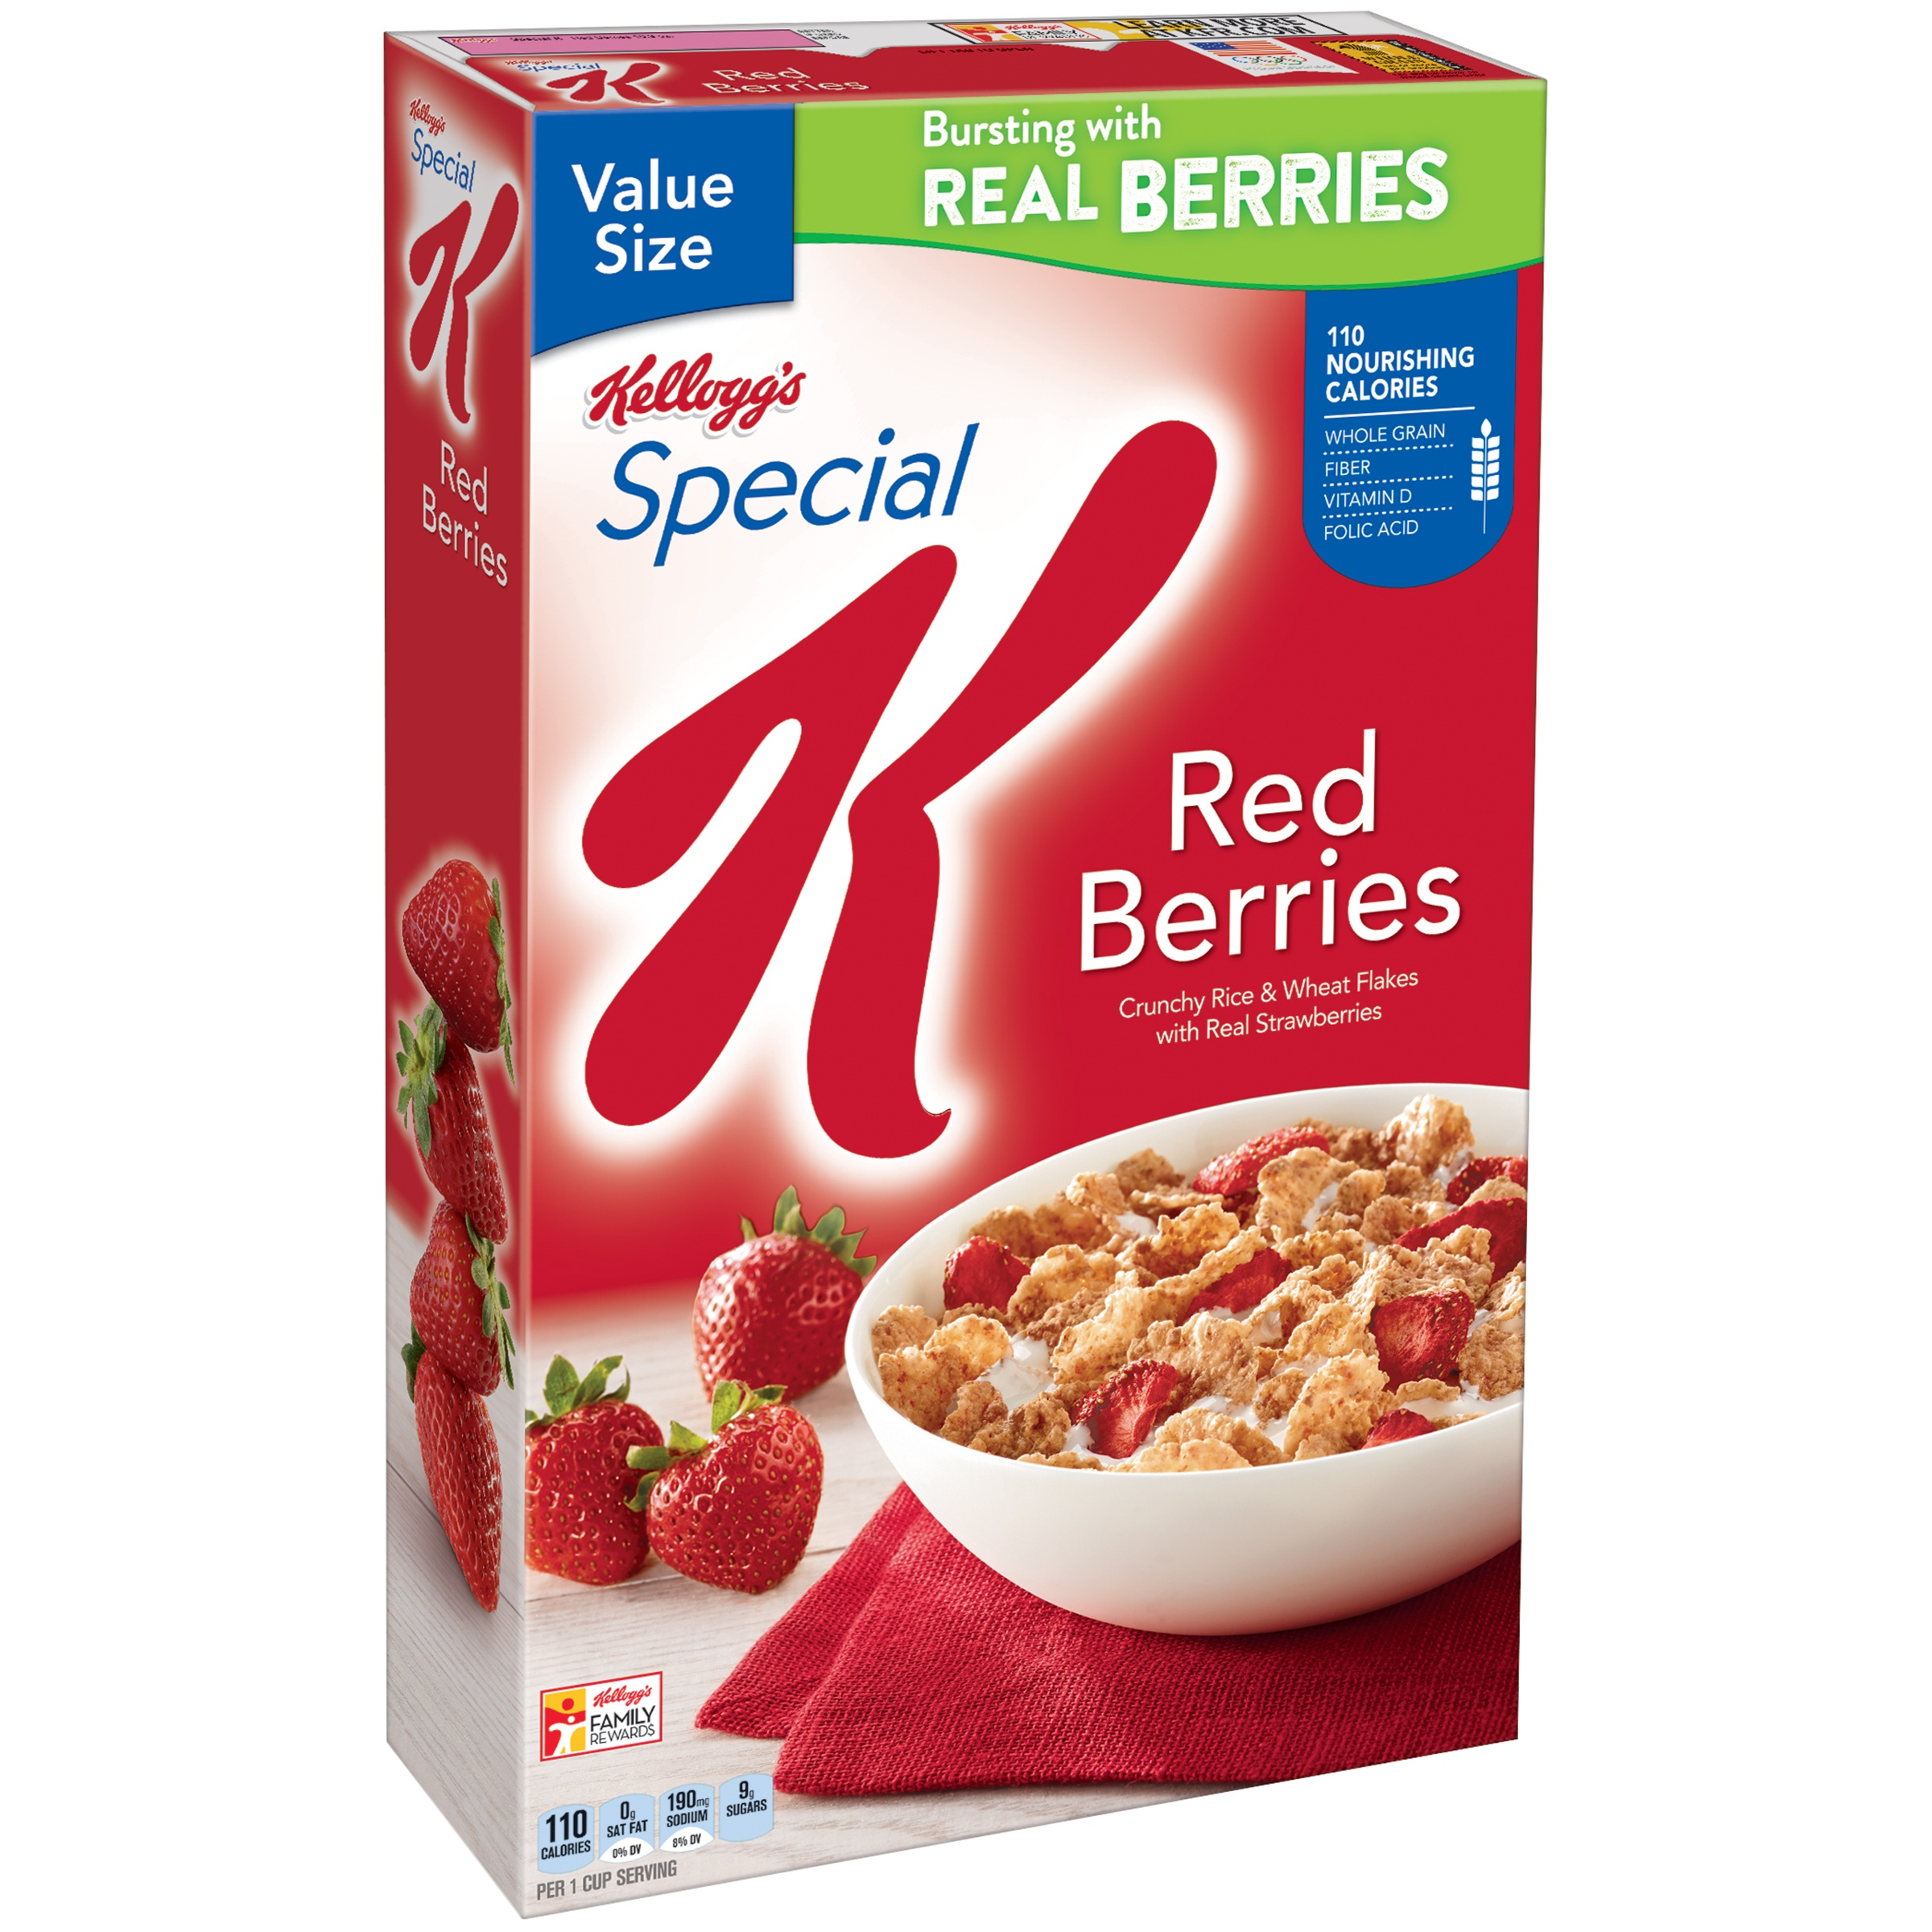 Kellogg's Special K Breakfast Cereal, Red Berries, 16.9 Oz